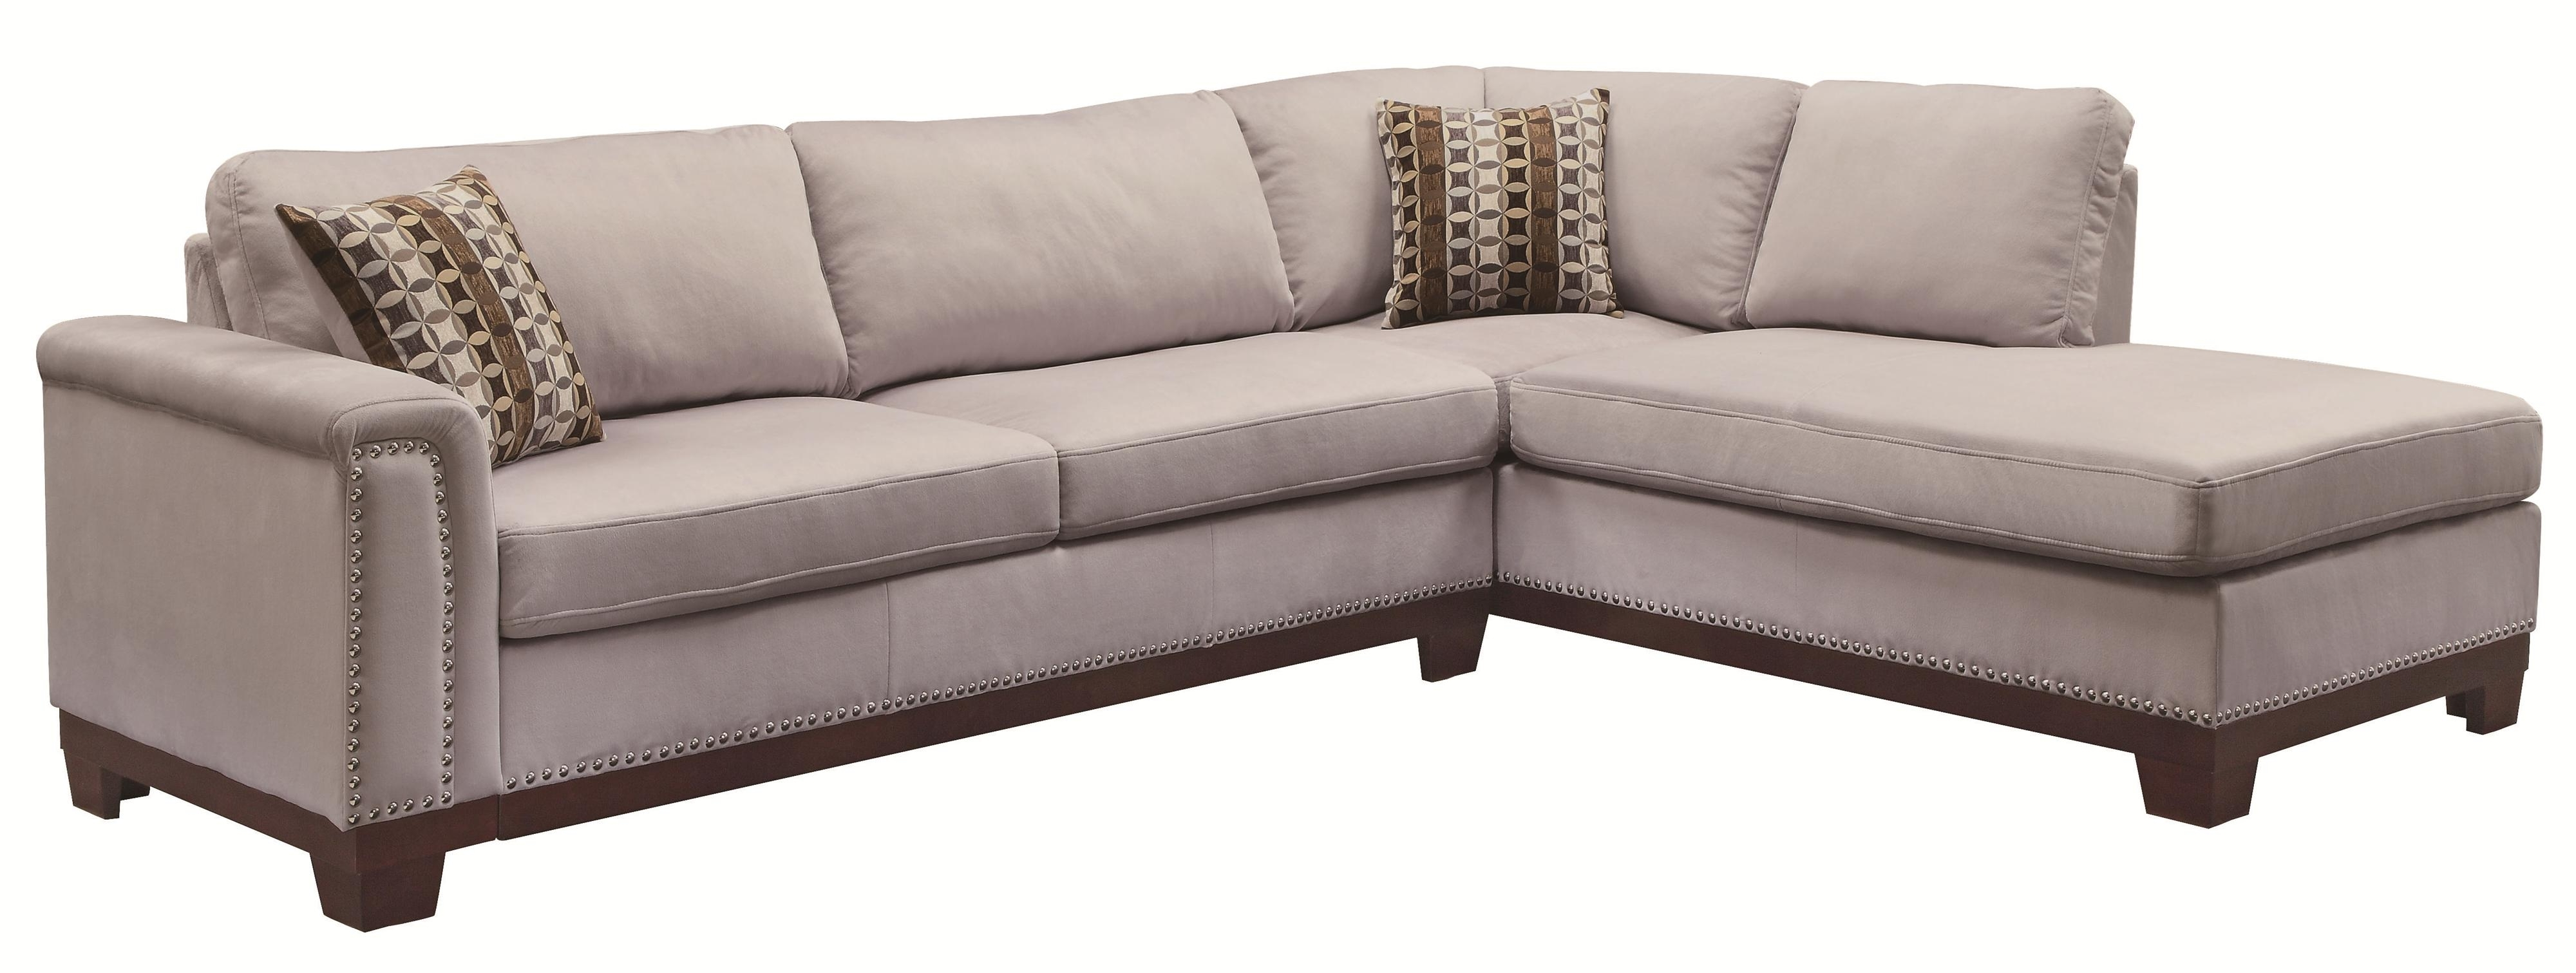 Current Stylish Couch With Chaise Lounge With Stylish Small Living Room Throughout Small Sofa Chaises (View 15 of 15)